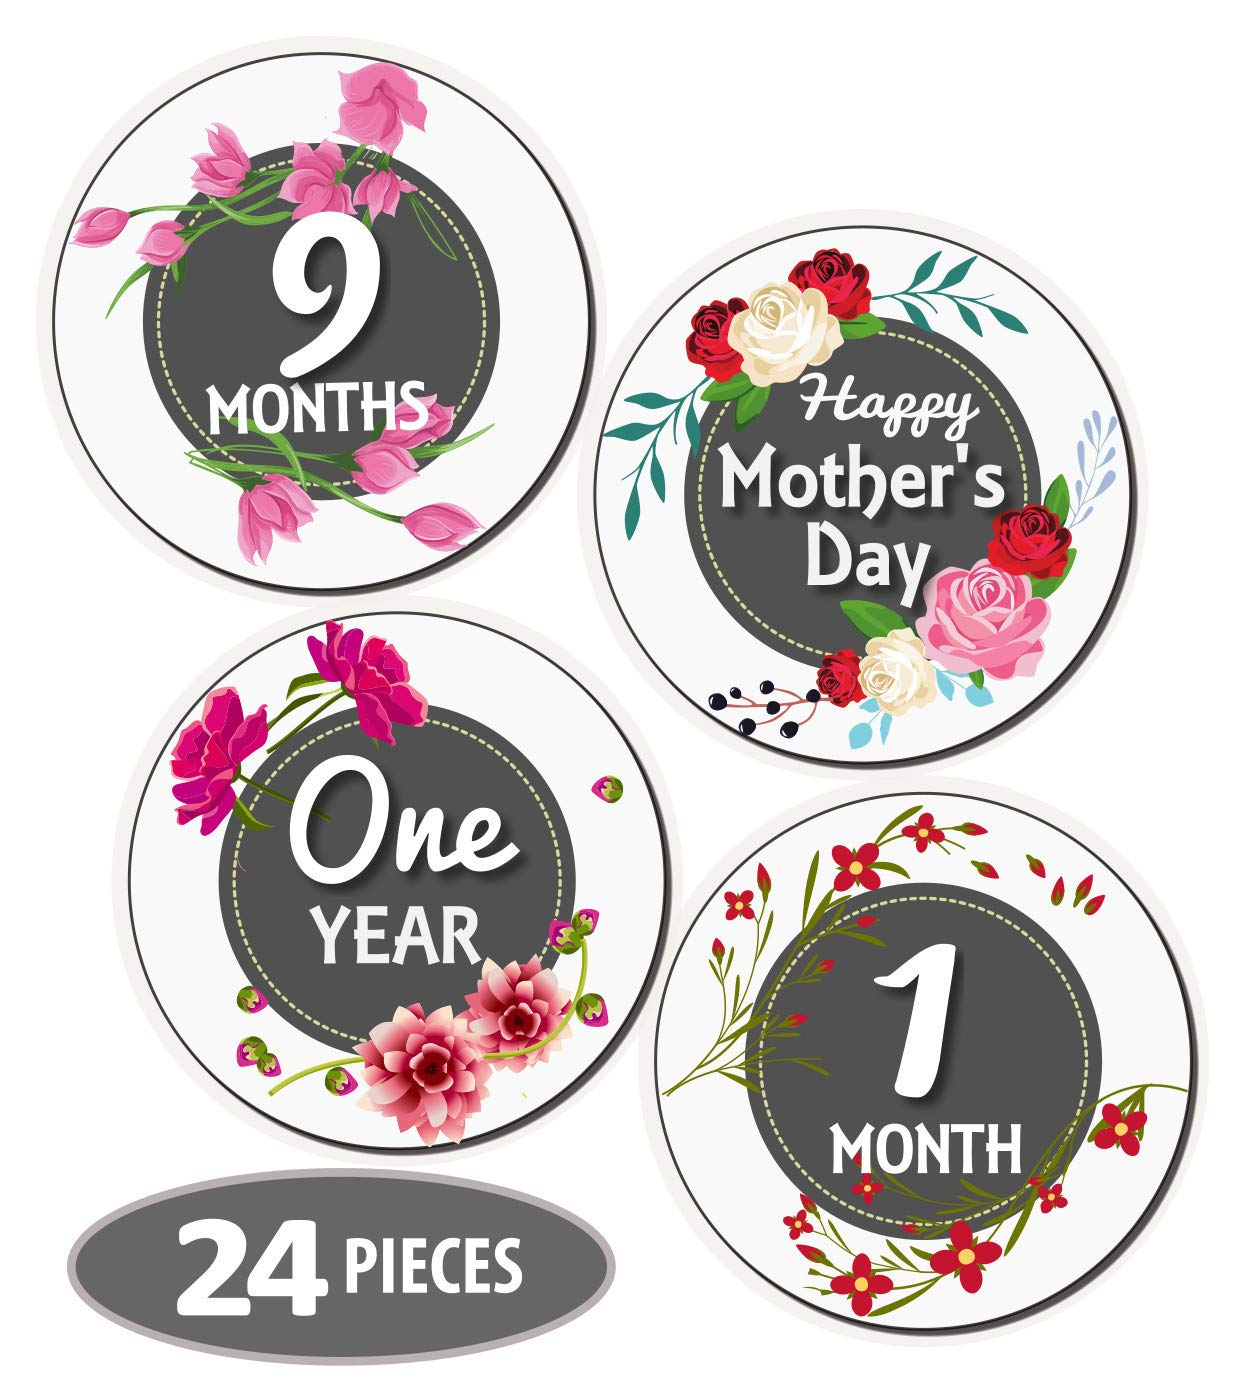 Mesmerico 24 Baby Monthly Holiday Floral Stickers – Baby Girl First Year Month Age Growth Milestones – Month Stickers for Baby – Onesie Belly Stickers – Unique Baby Shower Newborn Gifts